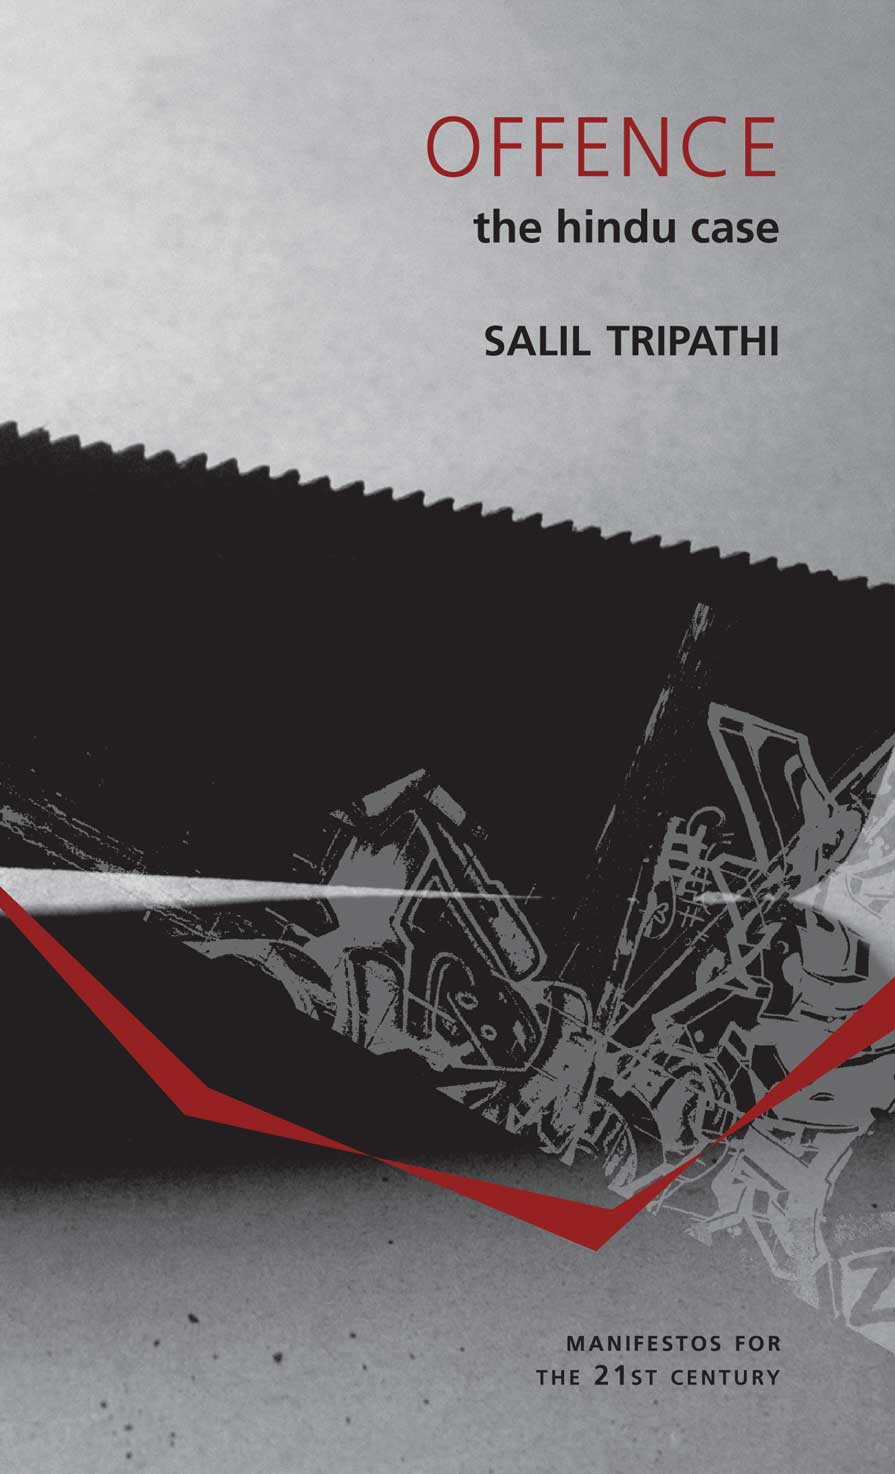 Offence: The Hindu Case by Salil Tripathi | Seagull Books